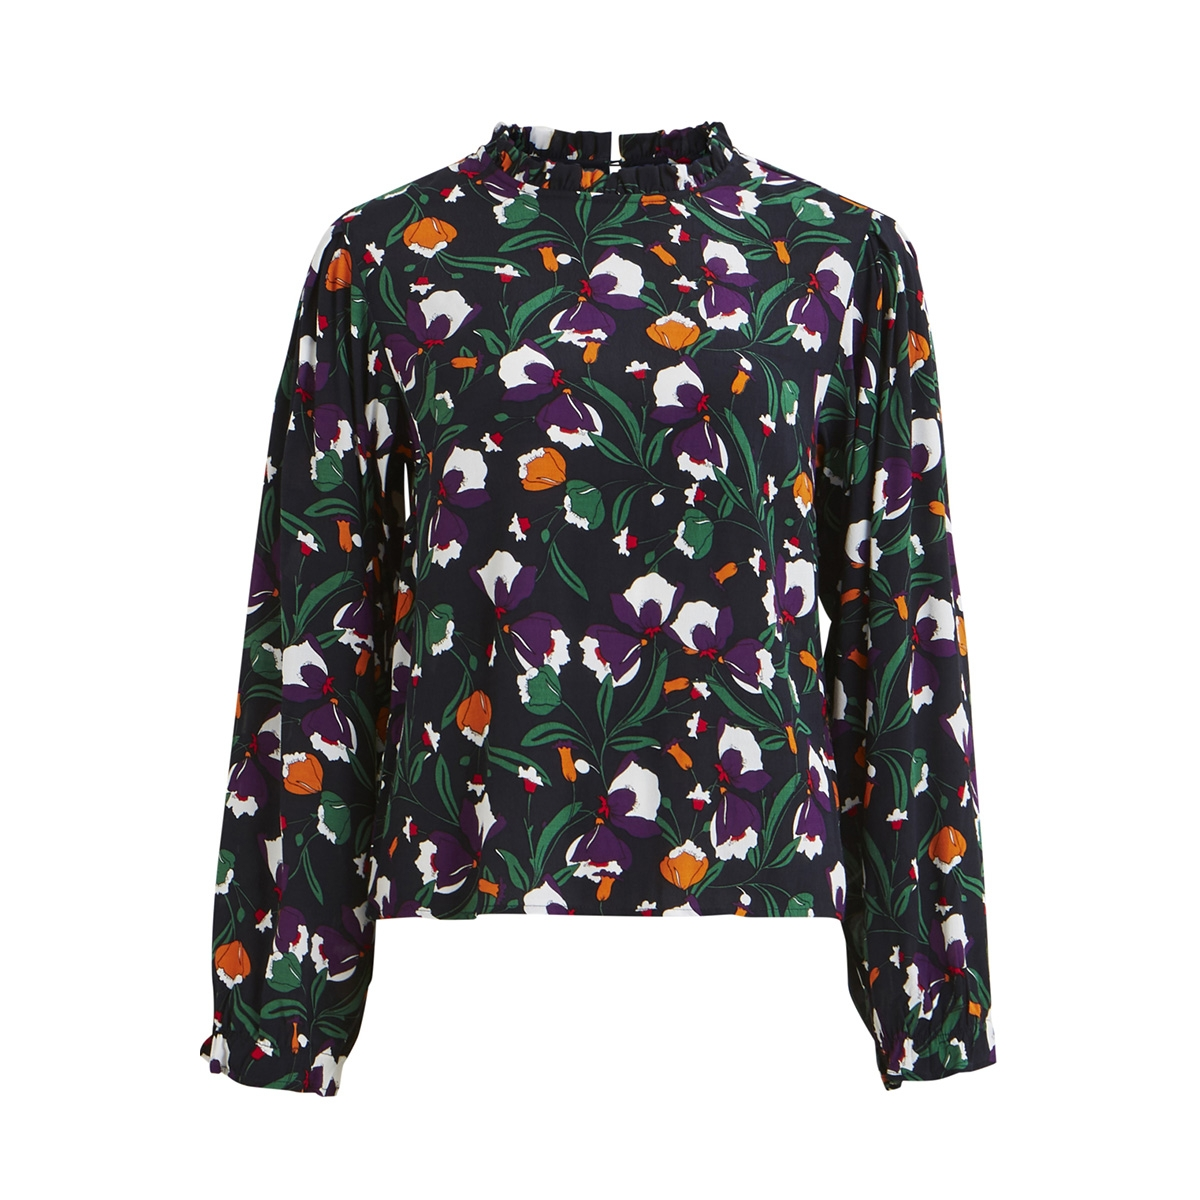 objmary-lee l/s high neck top a wi 23029634 object blouse sky captain/floral aop